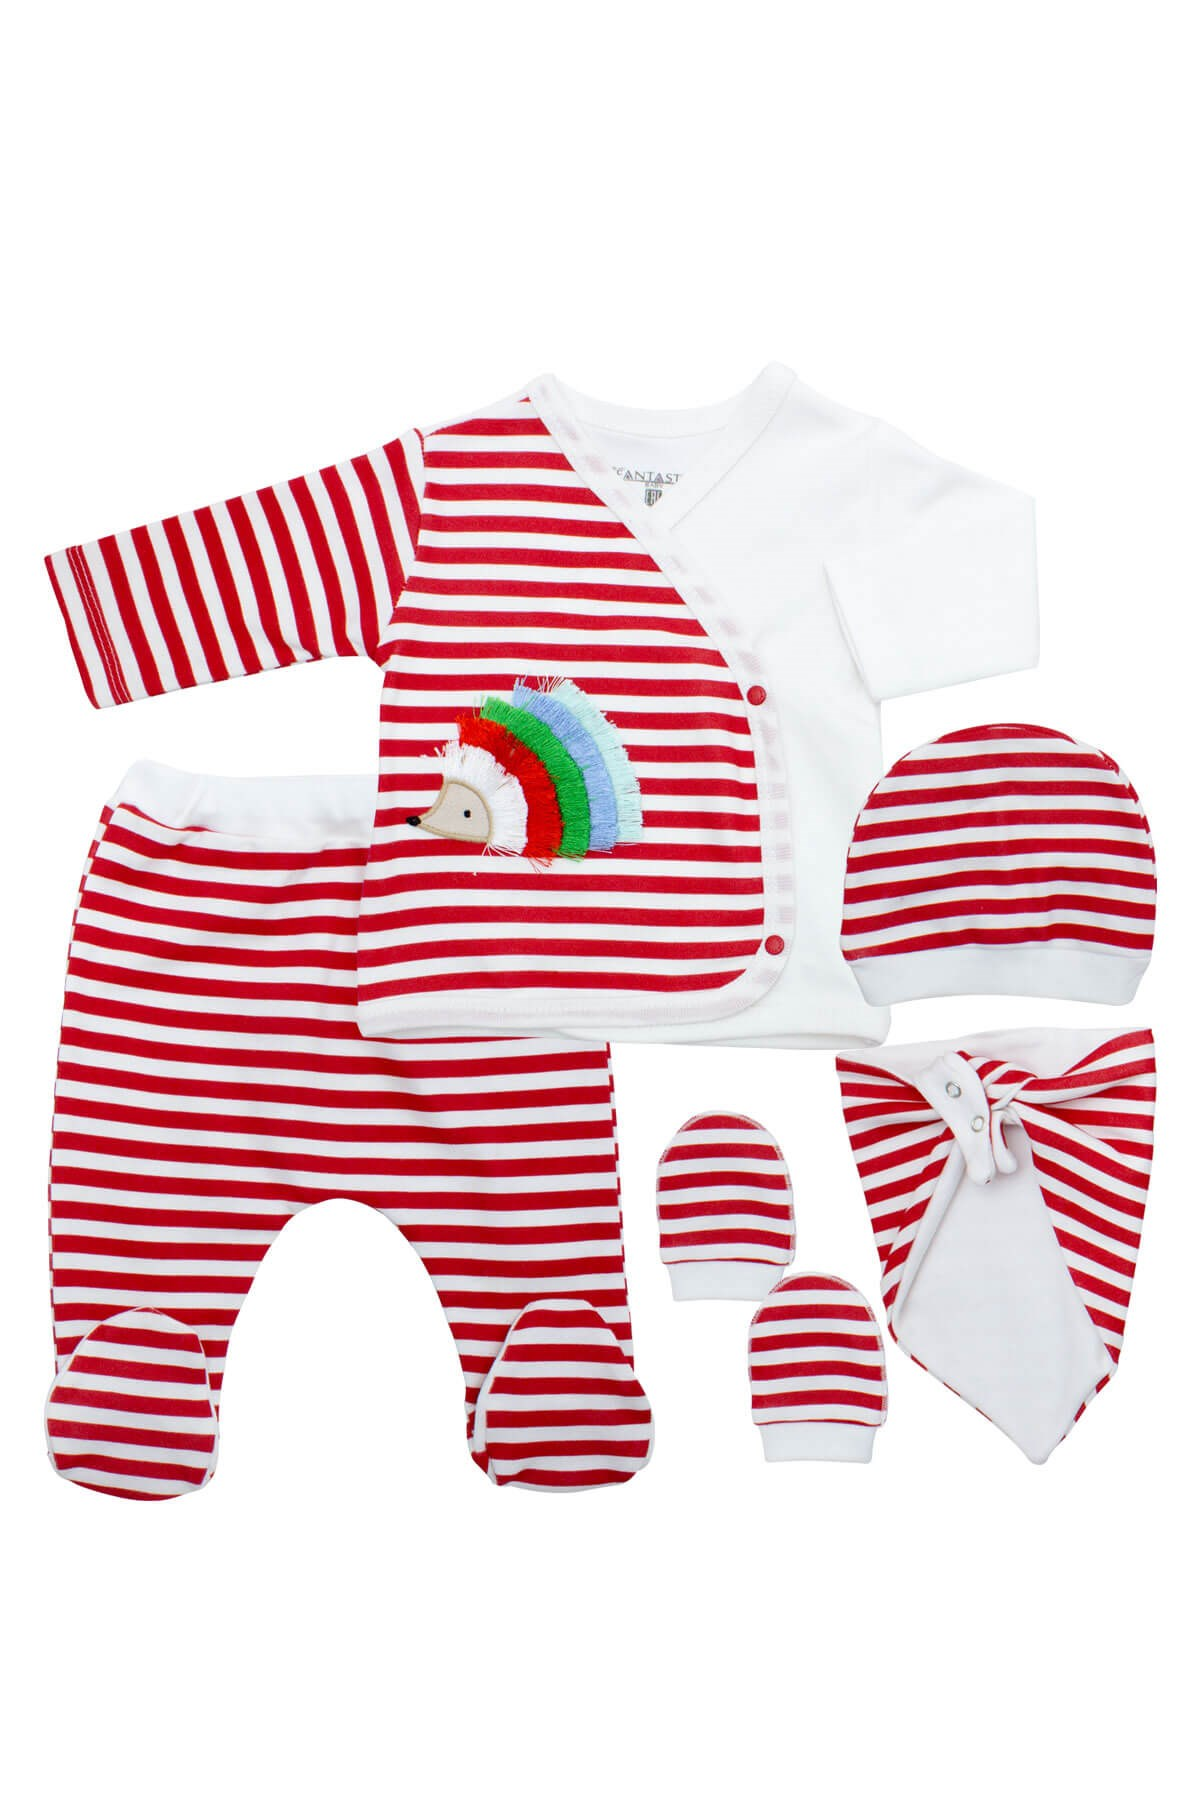 New Born Baby's Striped Red 5 Piece Outfit Set